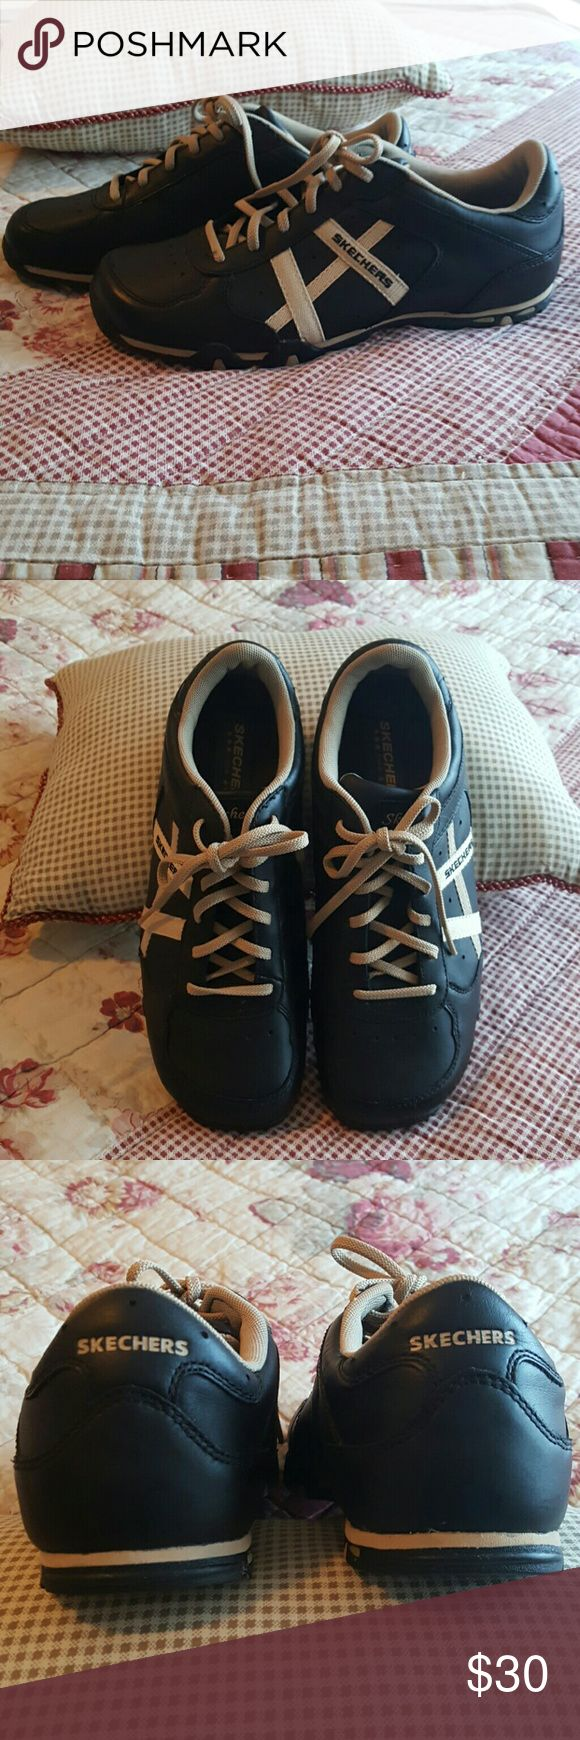 Sketchers Tennis Shoes NWOT. Never worn.  Black with tan lines on the outside of the shoe. Skechers Shoes Sneakers